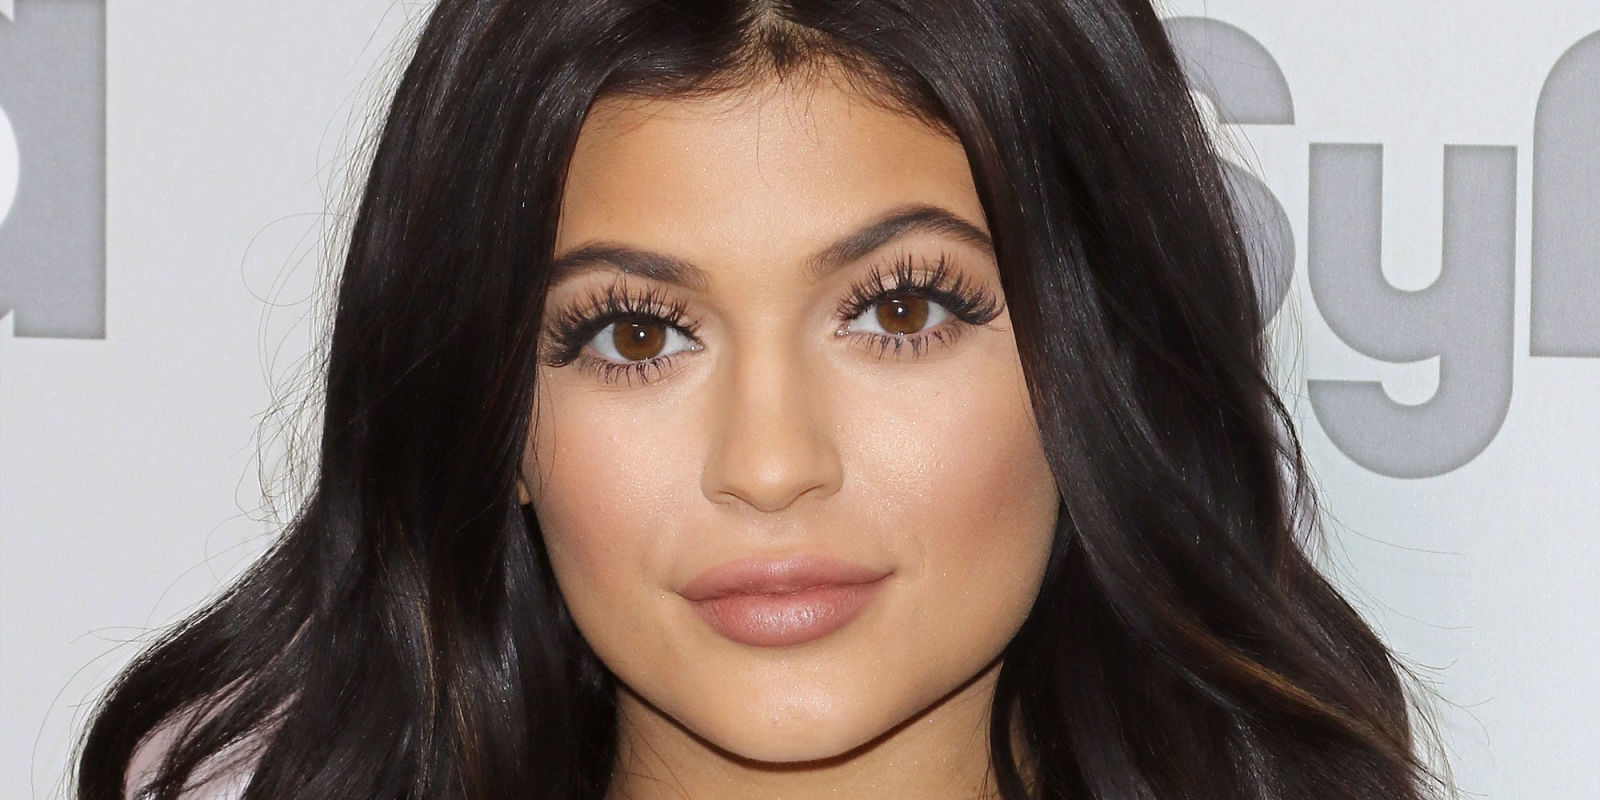 kylie jenner vkkylie jenner помада, kylie jenner birthday edition, kylie jenner shop, kylie jenner lips, kylie jenner купить, kylie jenner vk, kylie jenner 2016, kylie jenner style, kylie jenner 2017, kylie jenner make up, kylie jenner помада цена, kylie jenner snapchat, kylie jenner insta, kylie jenner отзывы, kylie jenner koko k, kylie jenner nails, kylie jenner до и после, kylie jenner биография, kylie jenner dolce k, kylie jenner tumblr